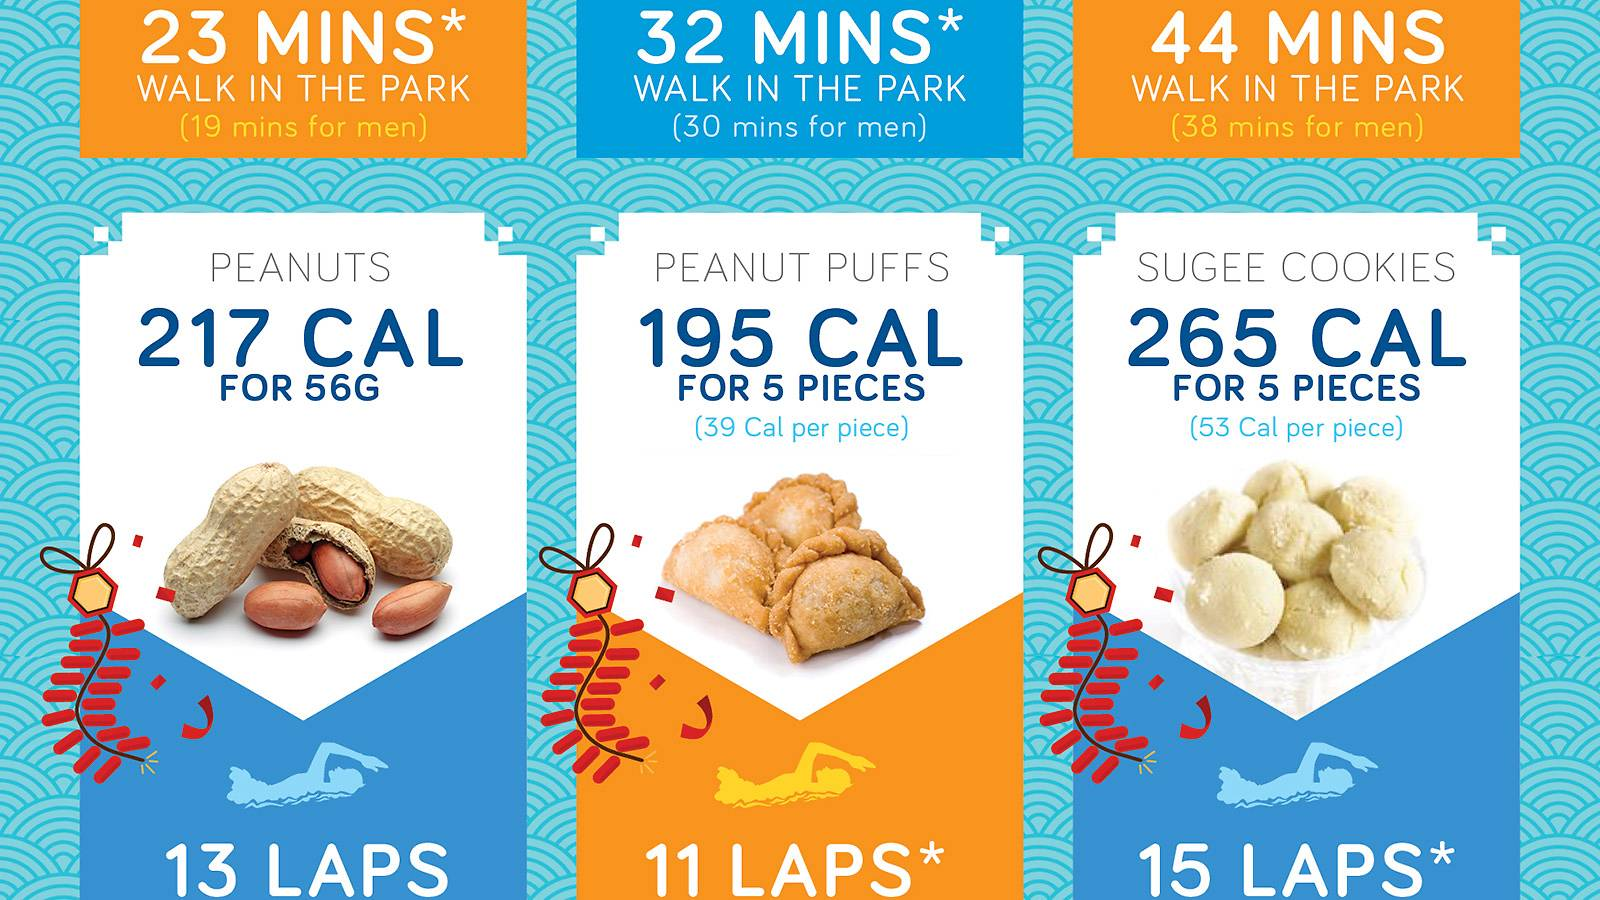 Parents-Beware-of-the-calorie-count-for-CNY-goodies-INFOGRAPHIC4